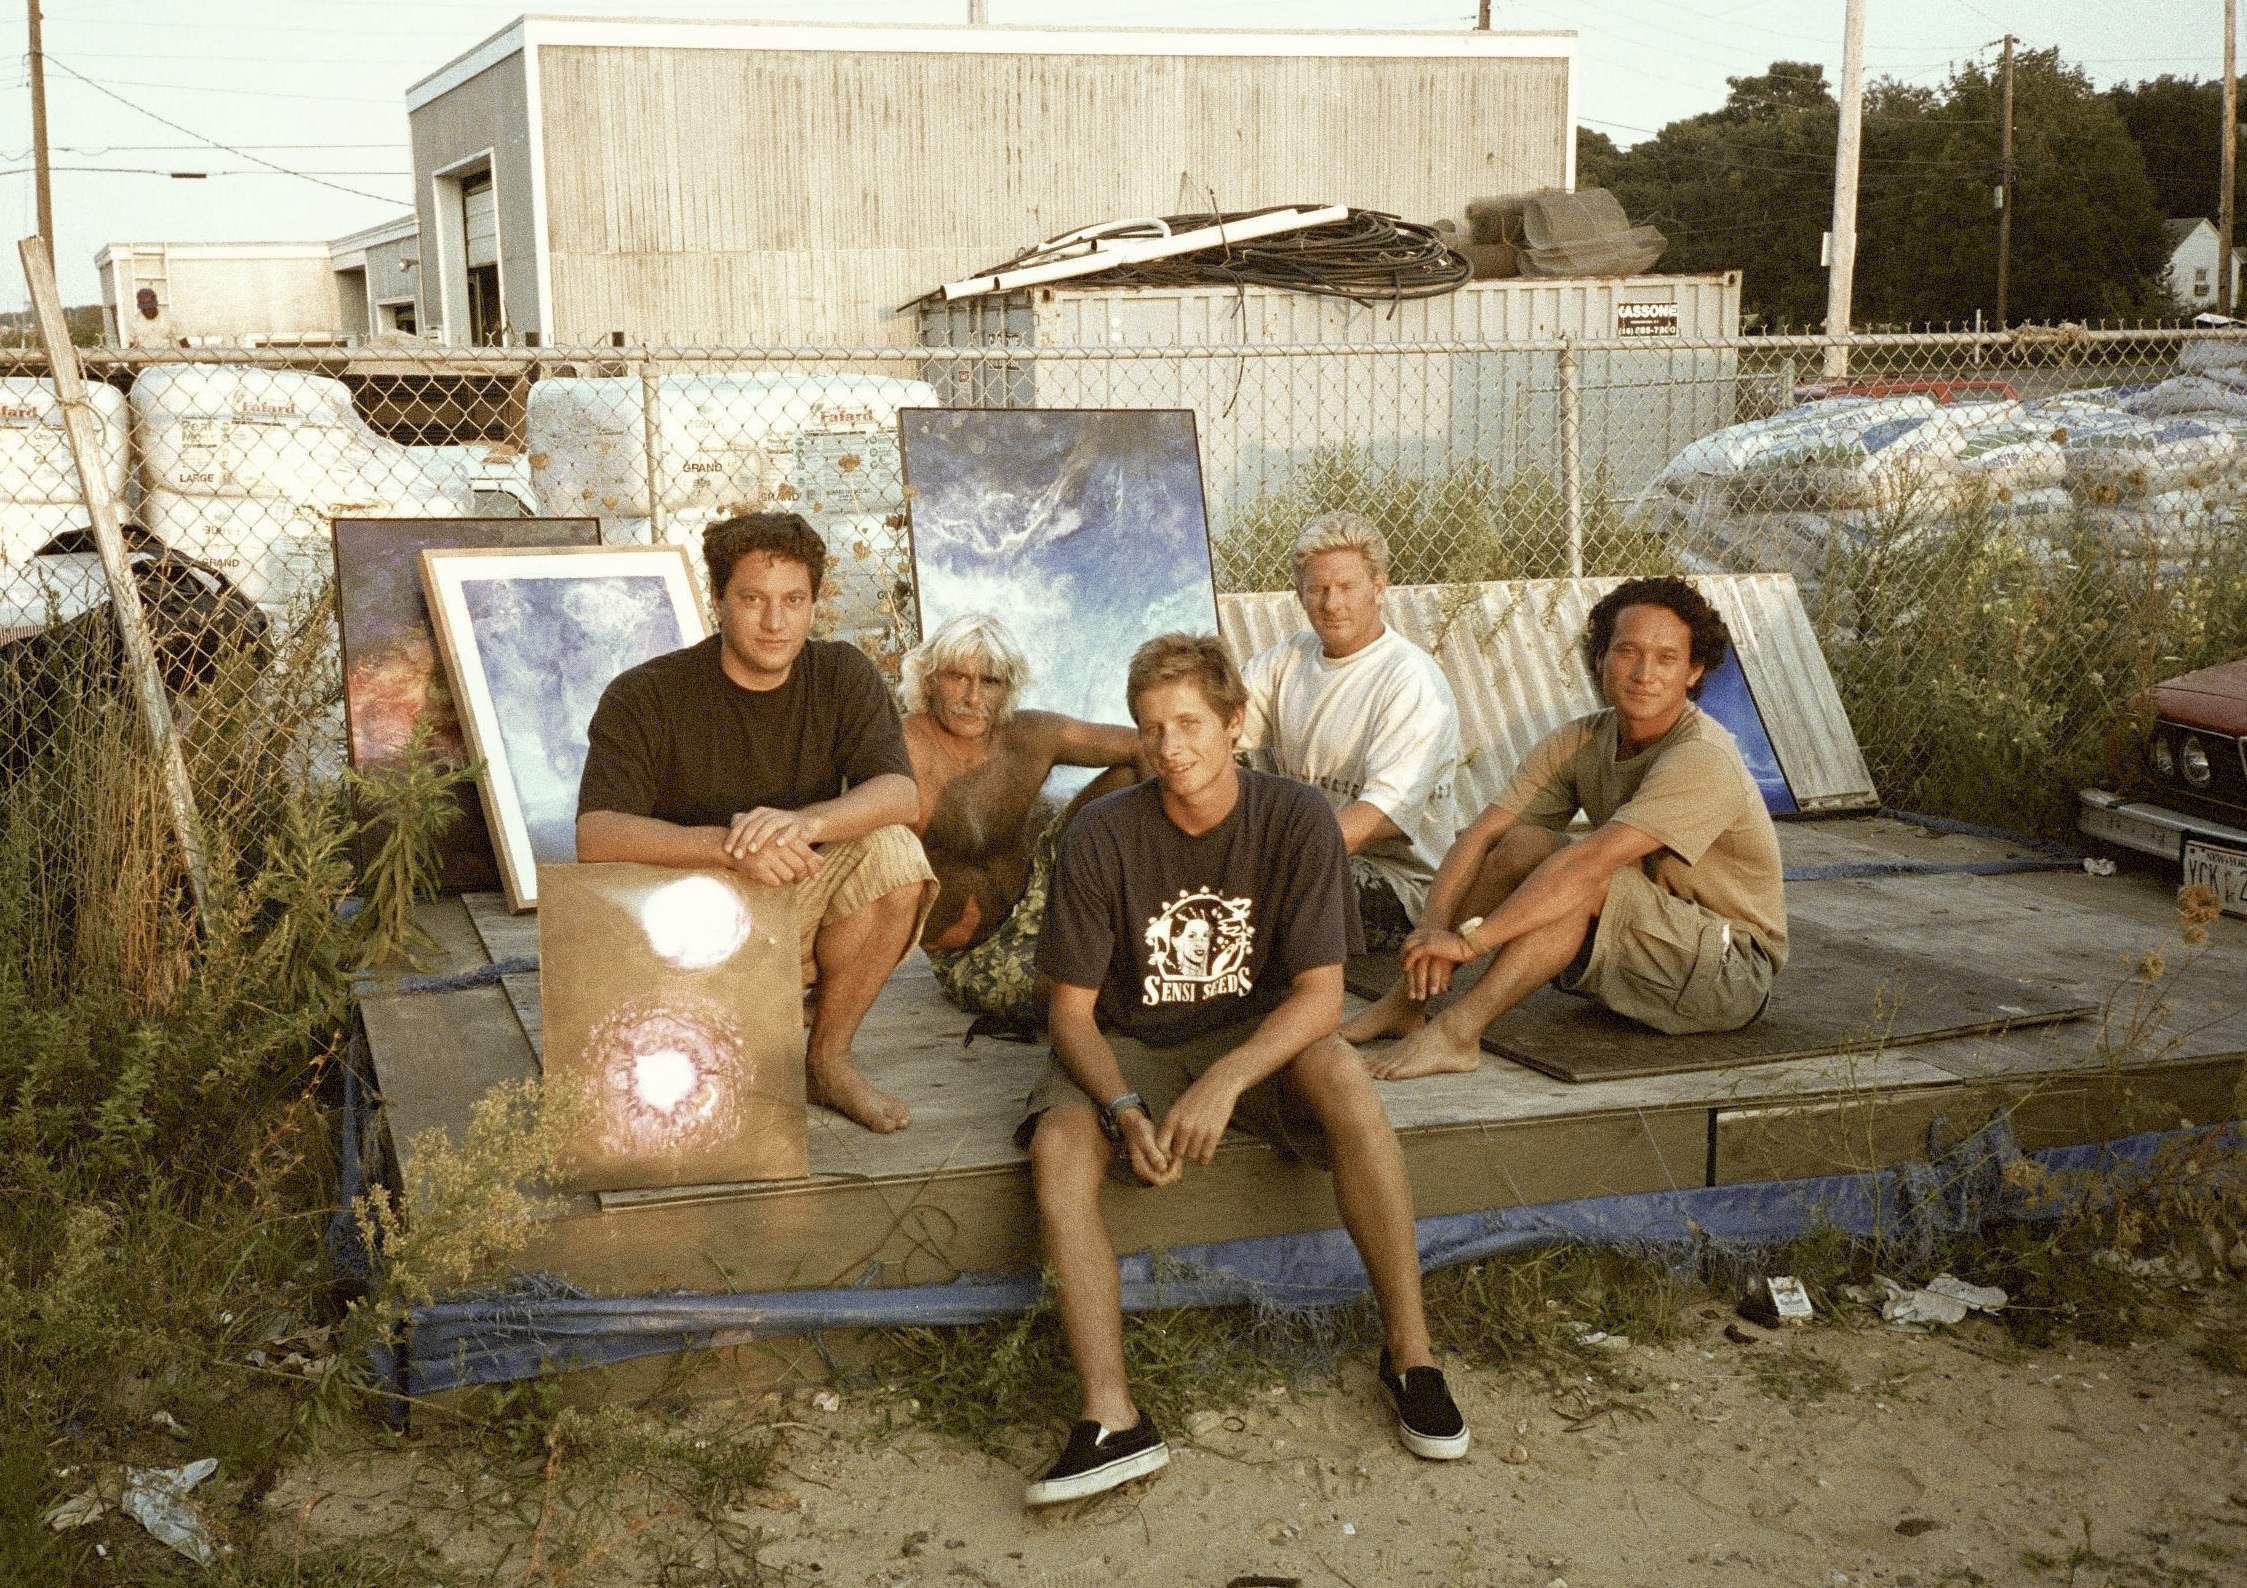 Andy Moses and friends in Montauk (Tony Caramanico, Joel Tudor, John Tunney, Takuji Matsuda) by Art Brewer, '97